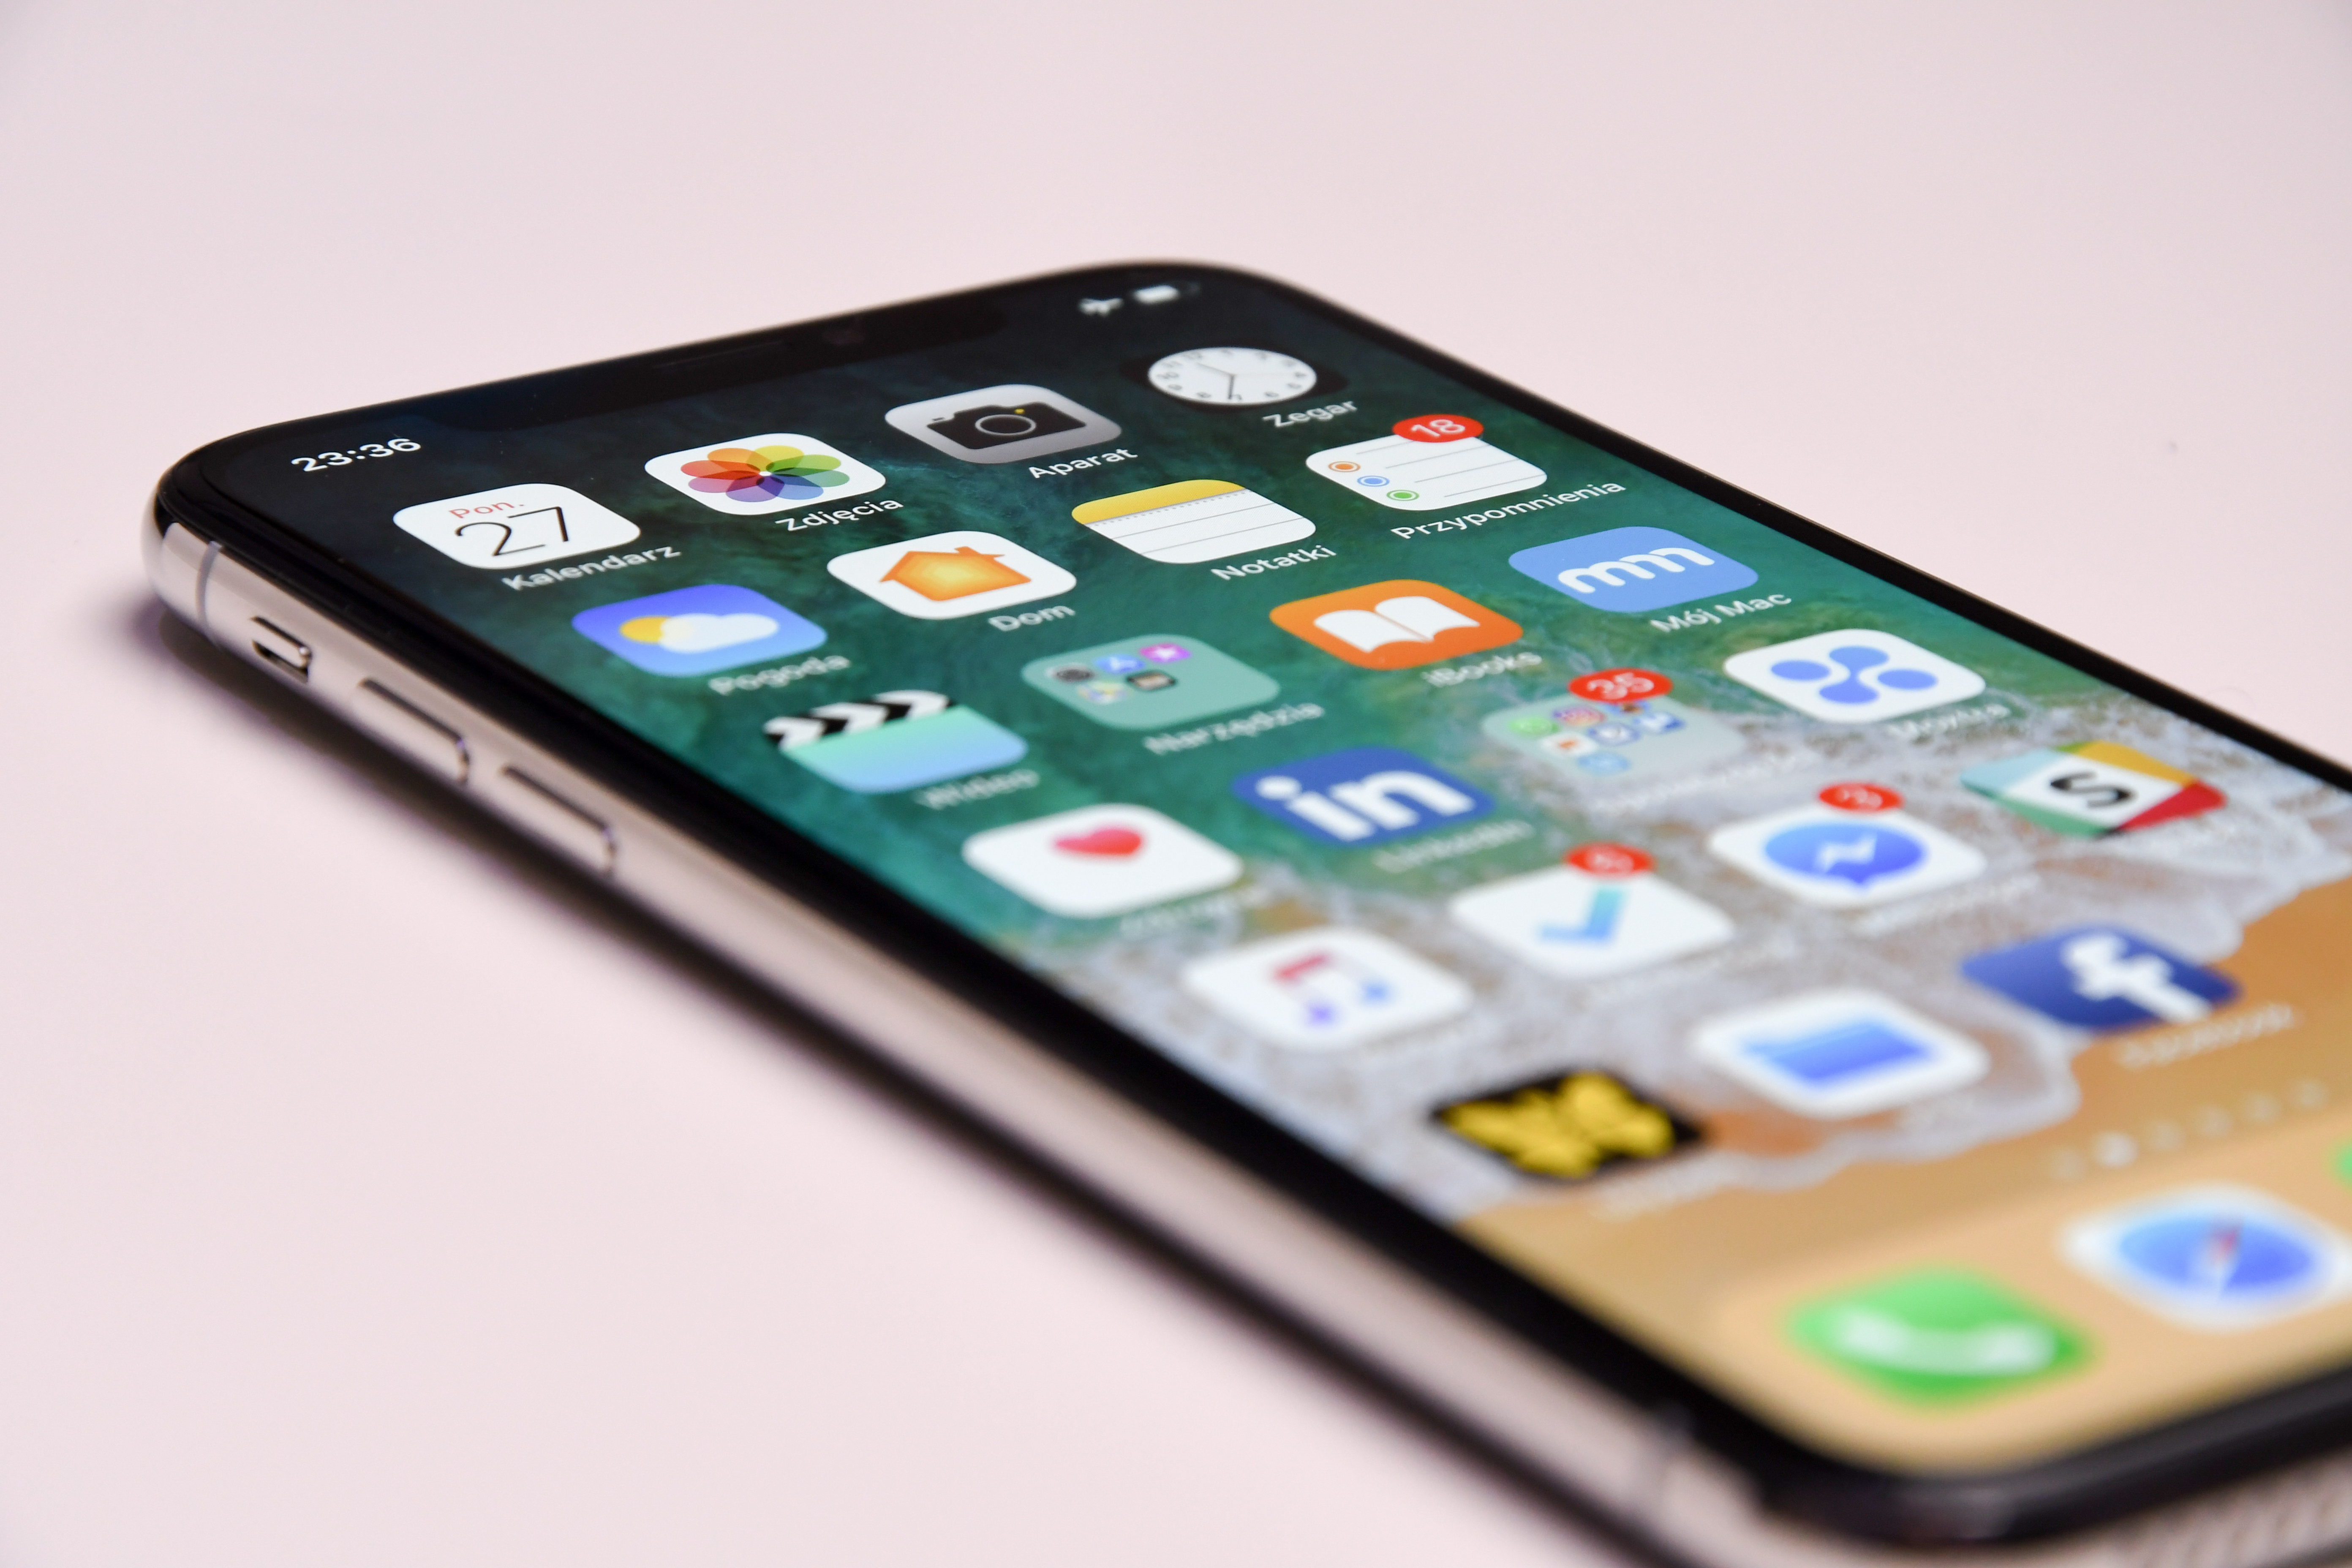 A few of my favourite iPhone apps